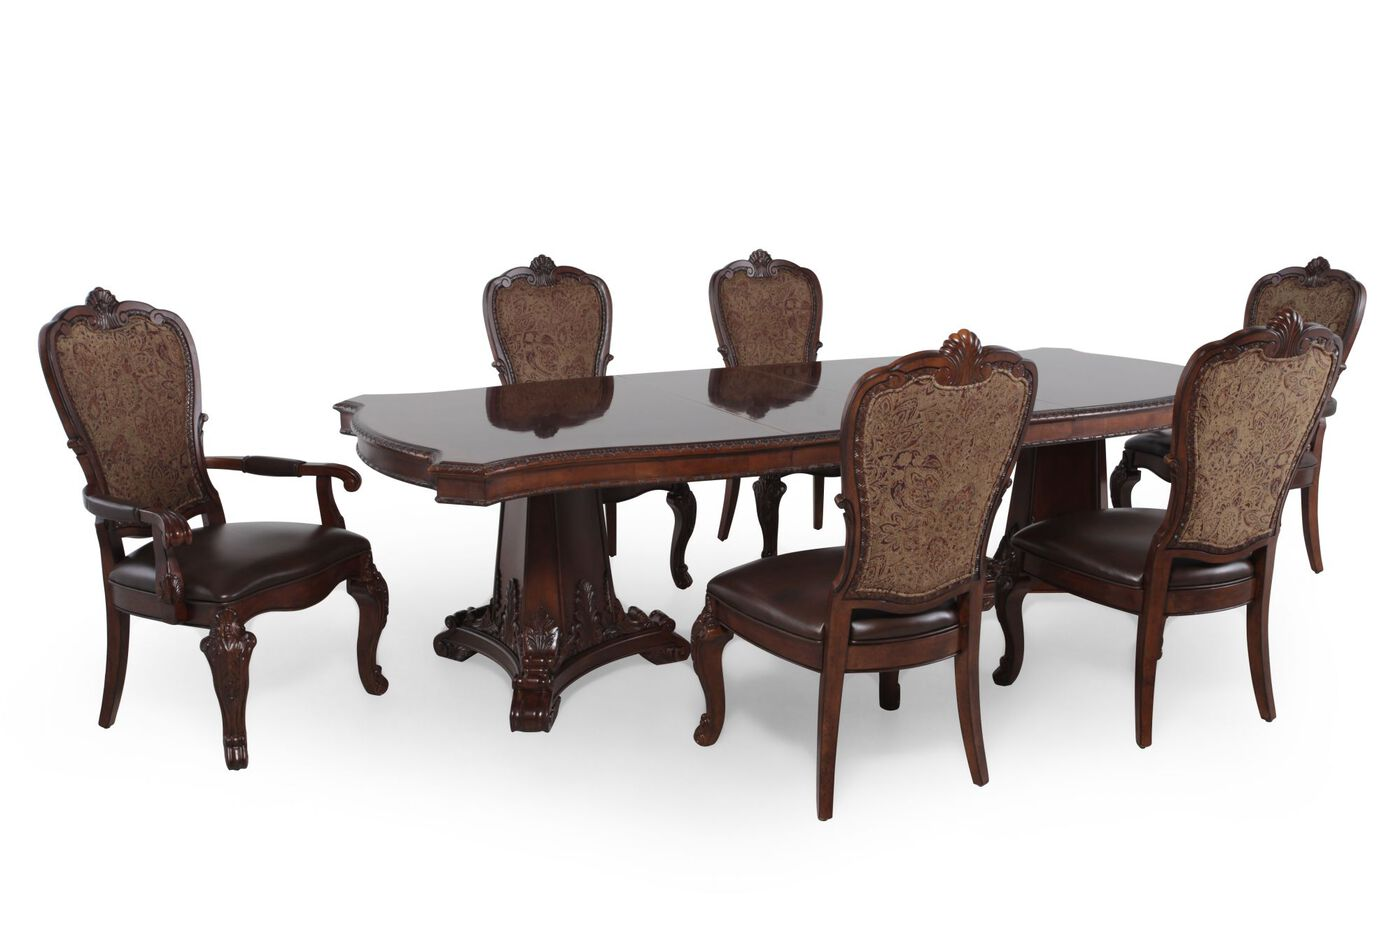 ART Furniture Seven Piece Old World Pedestal Table Dining Set